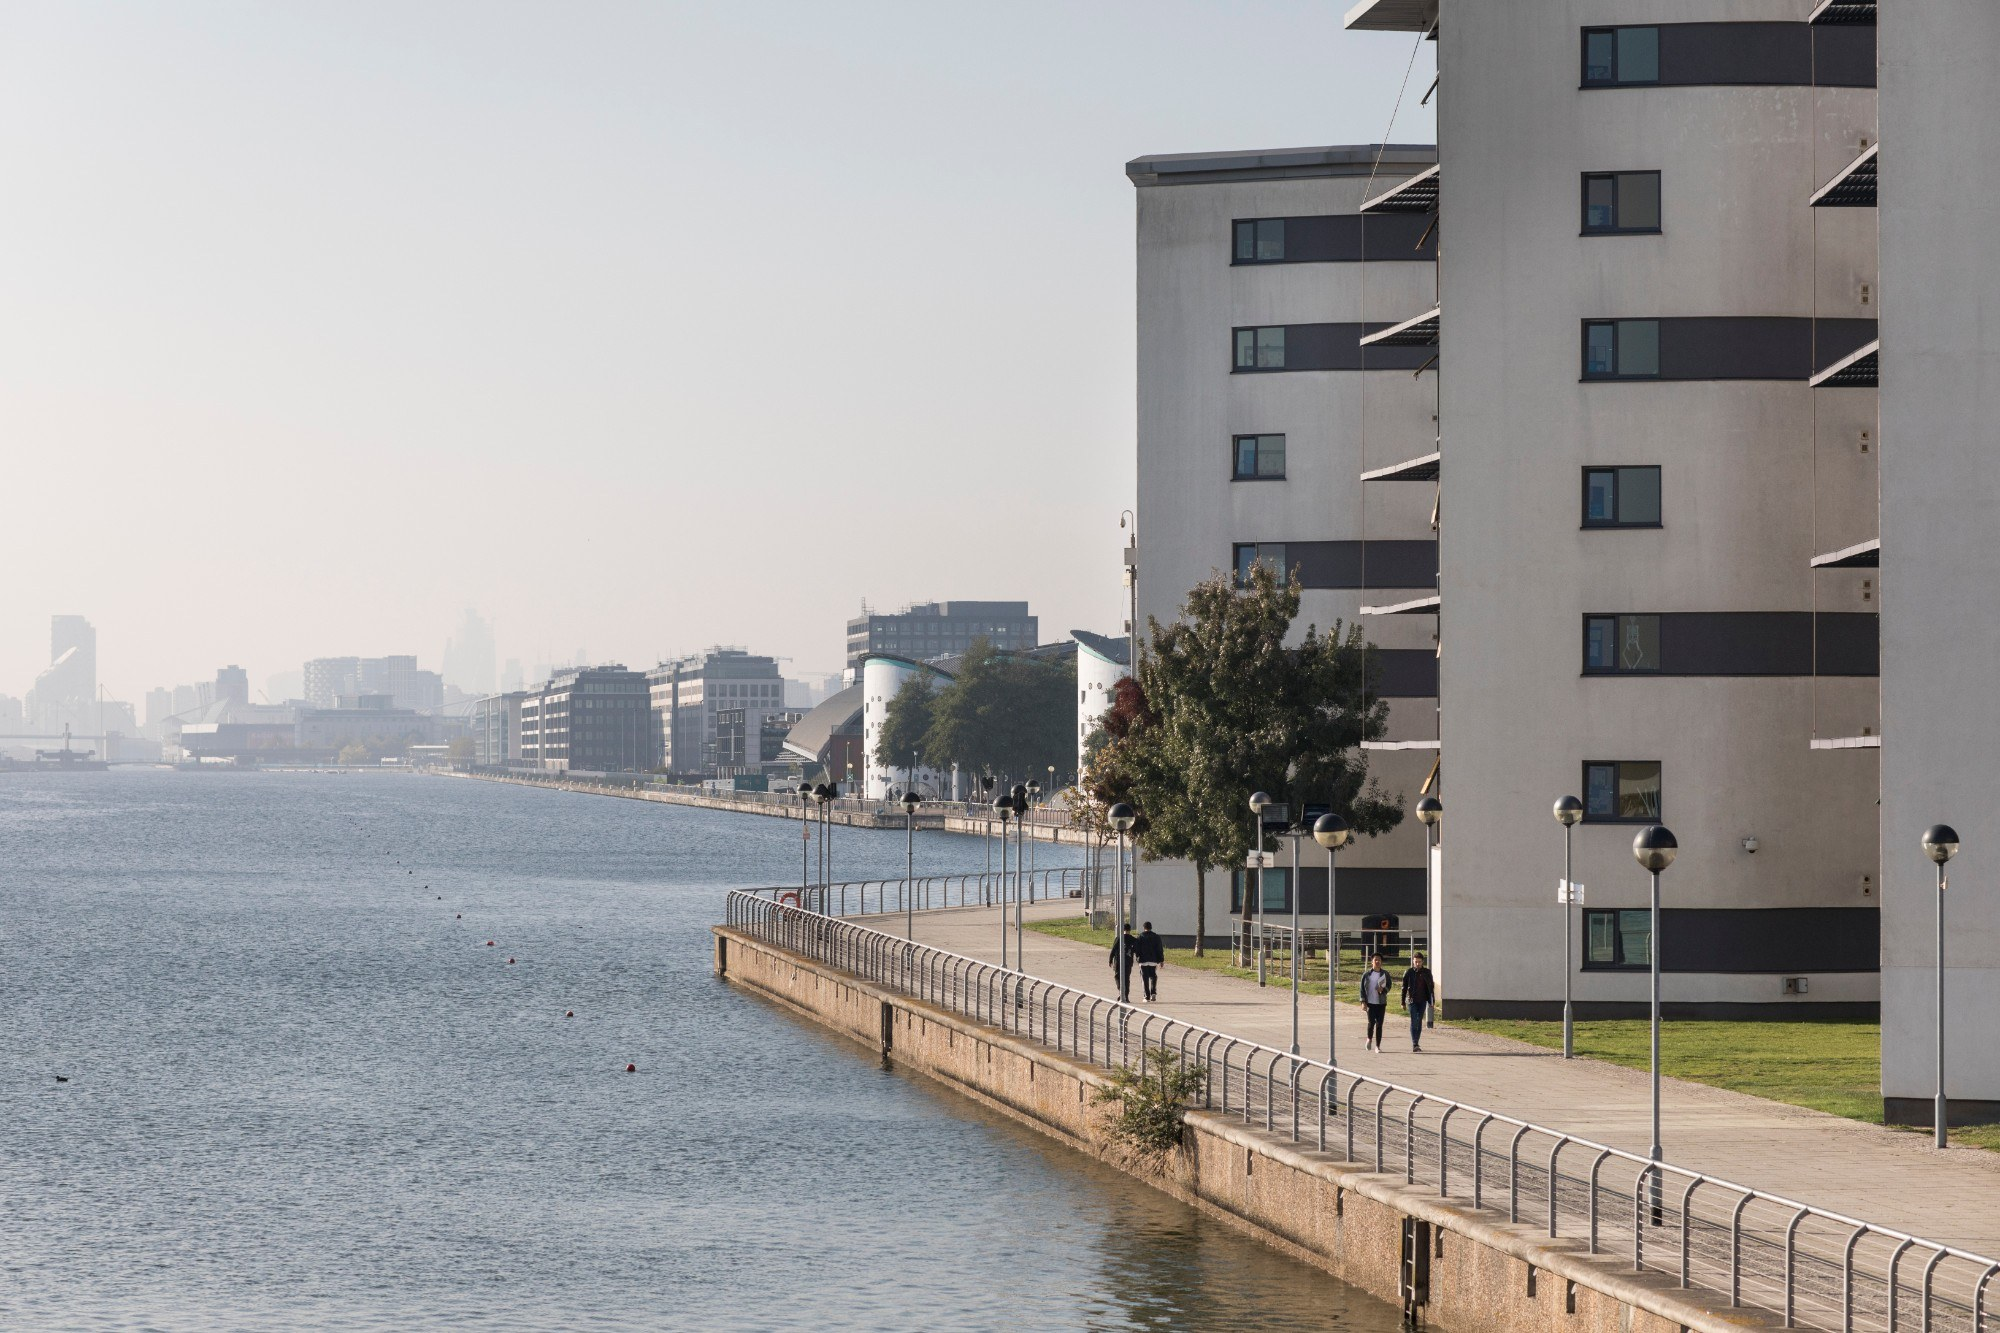 An image of University of East London from Redgrave Bridge overlooking the water